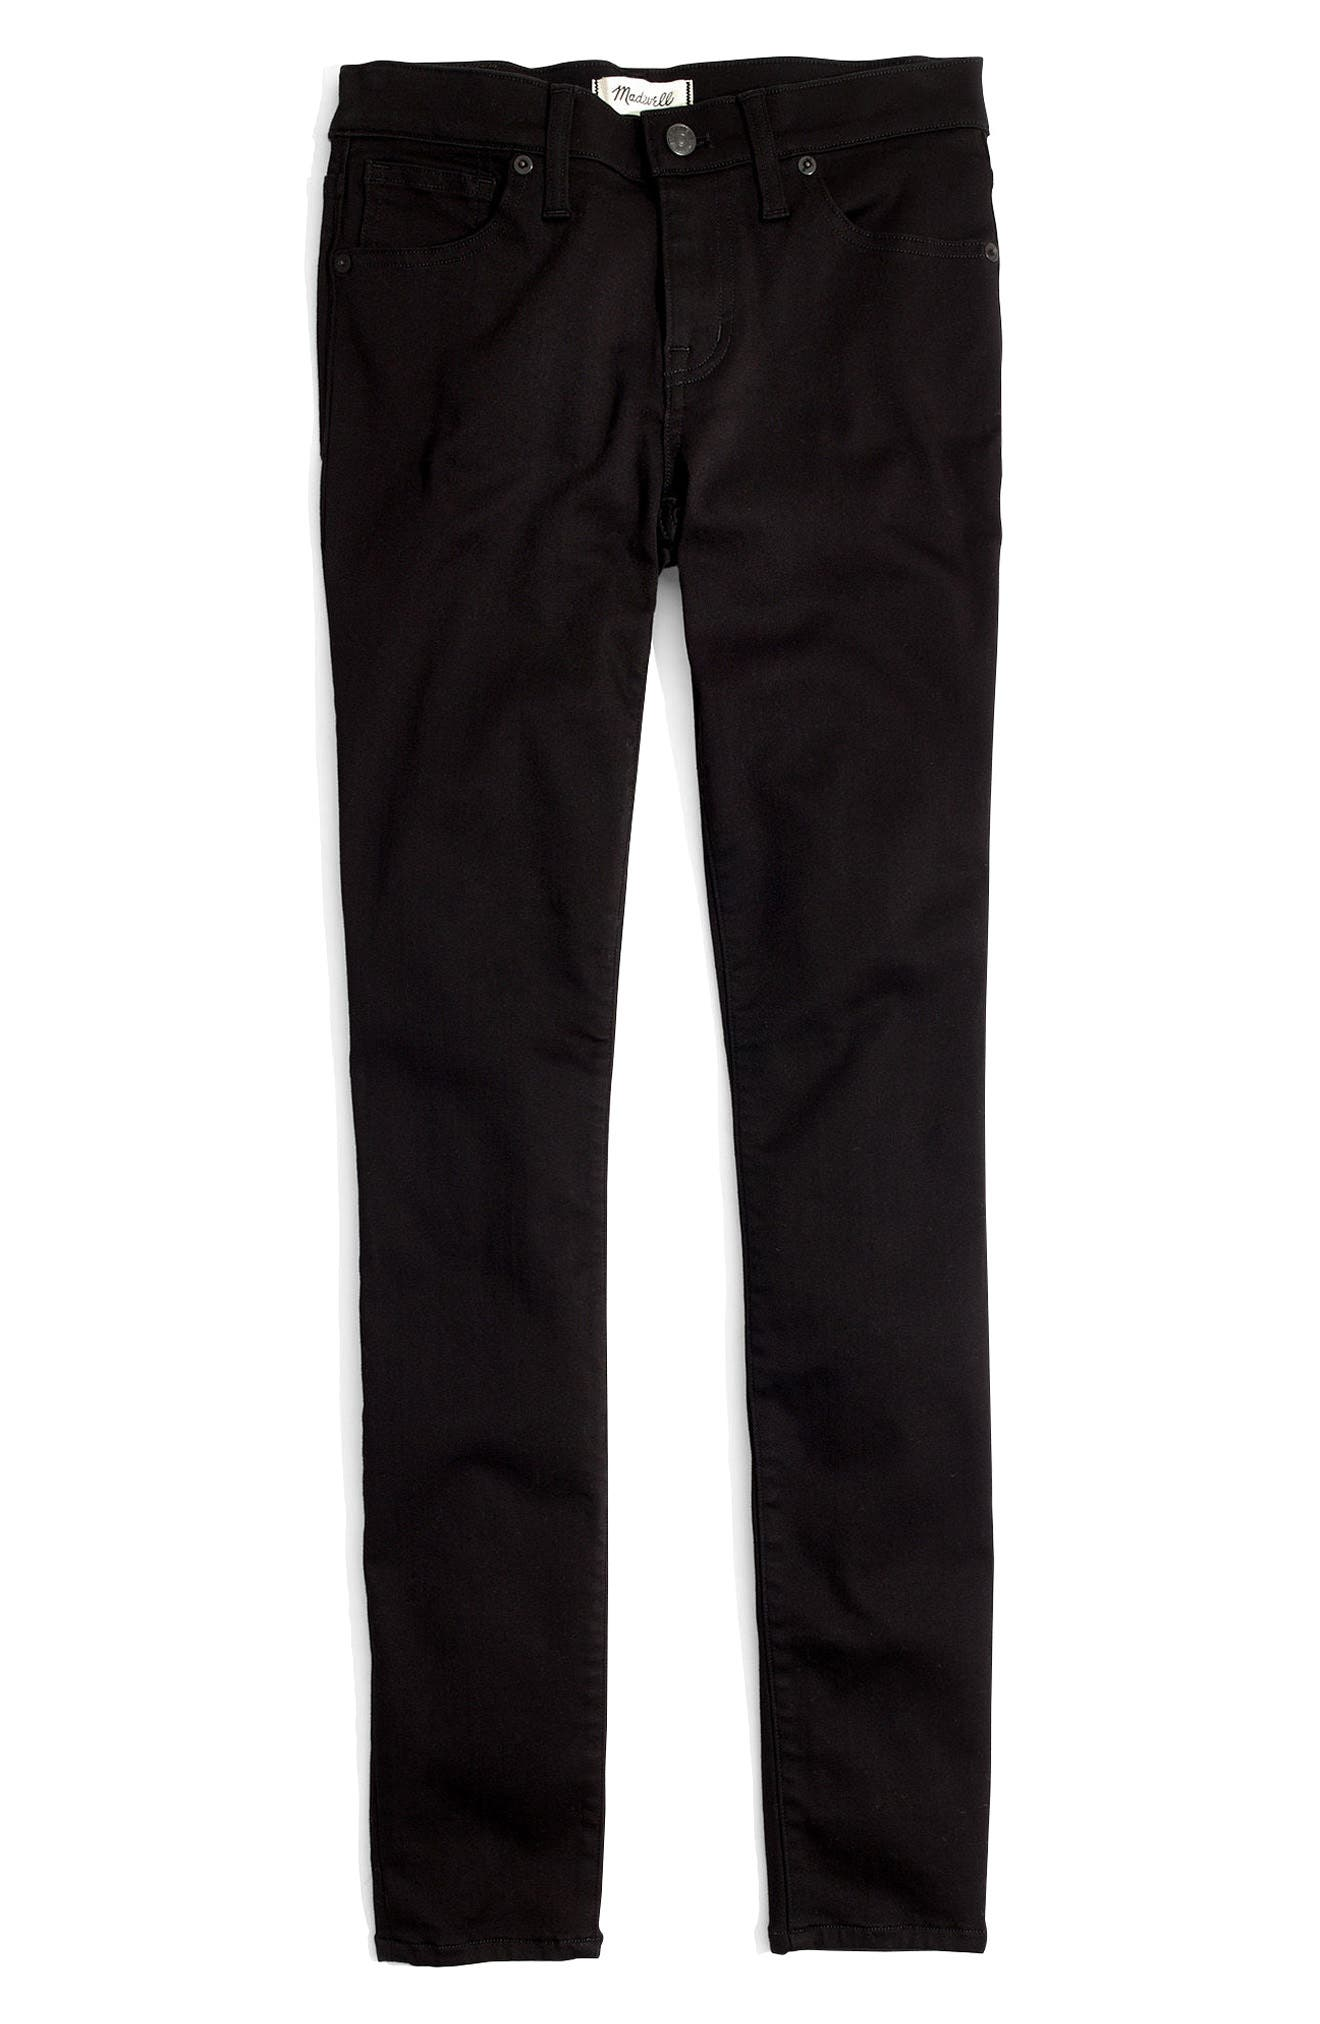 Alternate Image 3  - Madewell 8-Inch Skinny Jeans (Carbondale Wash)